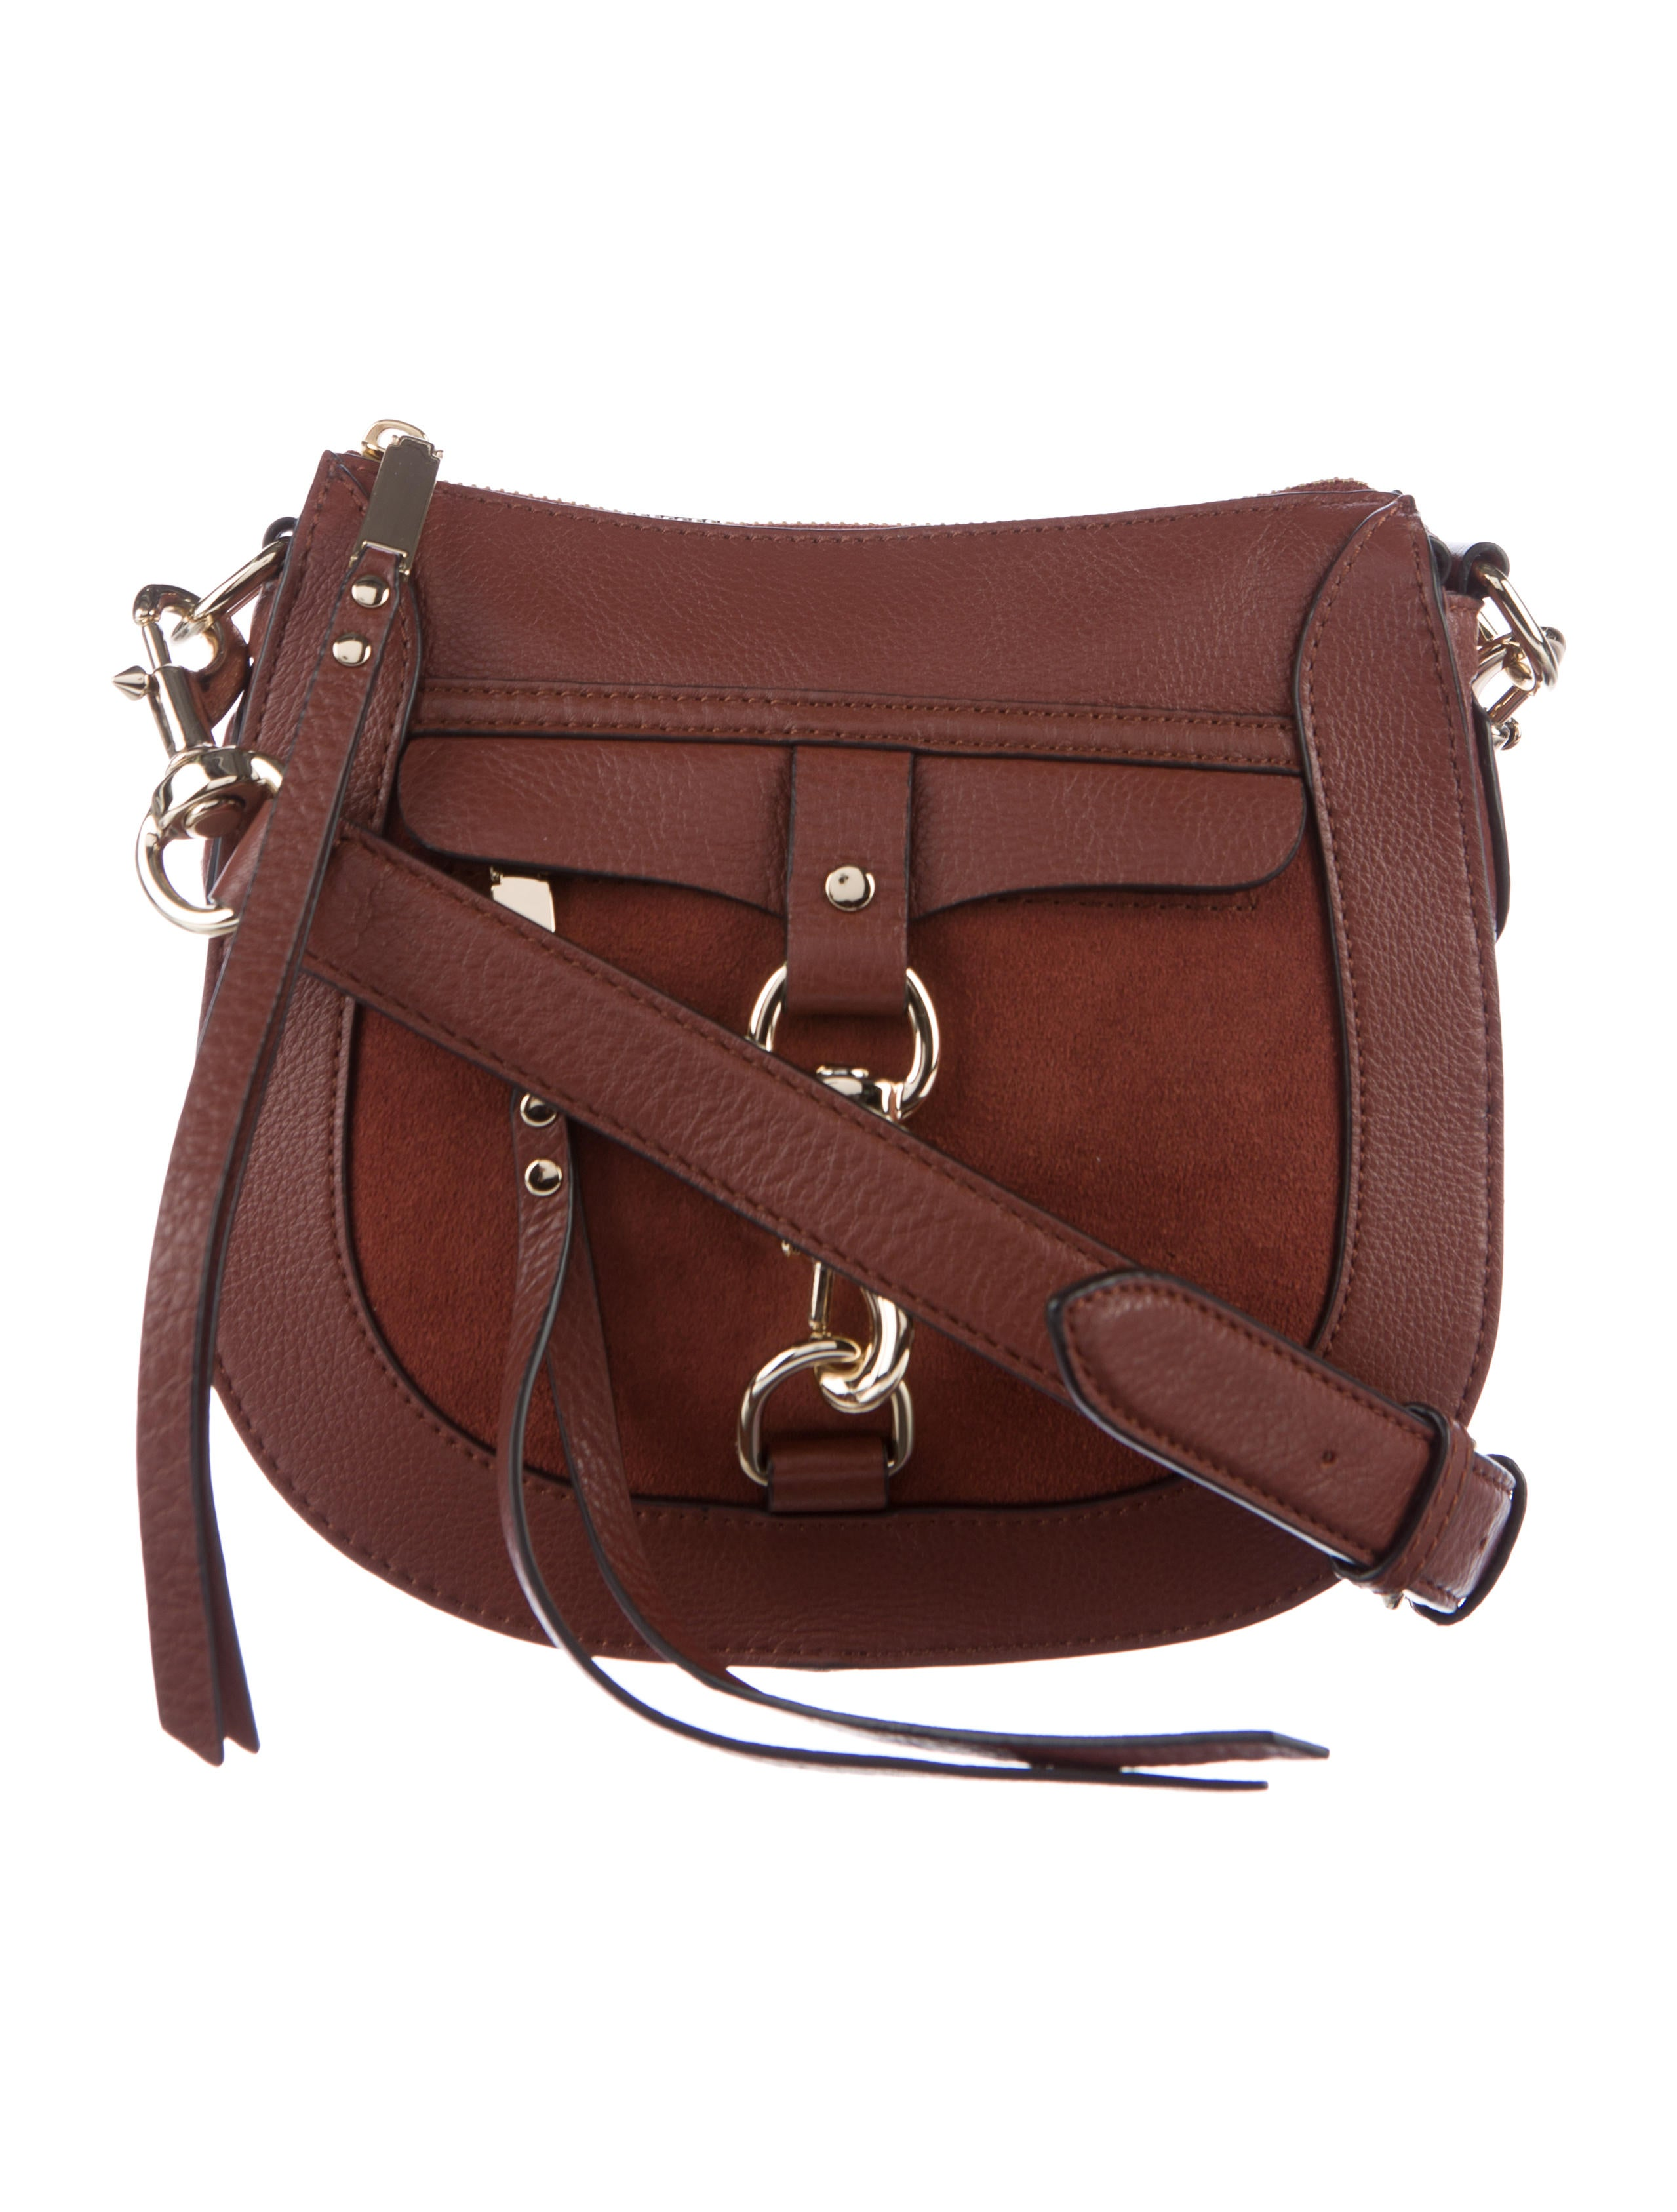 Fashion-Forward Rebecca Minkoff Leather Bags. Rebecca Minkoff moved to the bright lights of New York City at the tender age of 18 to pursue her dream of being a fashion designer, in she launched he first wildly popular capsule collection and in Minkoff created the bag that put her on the map.